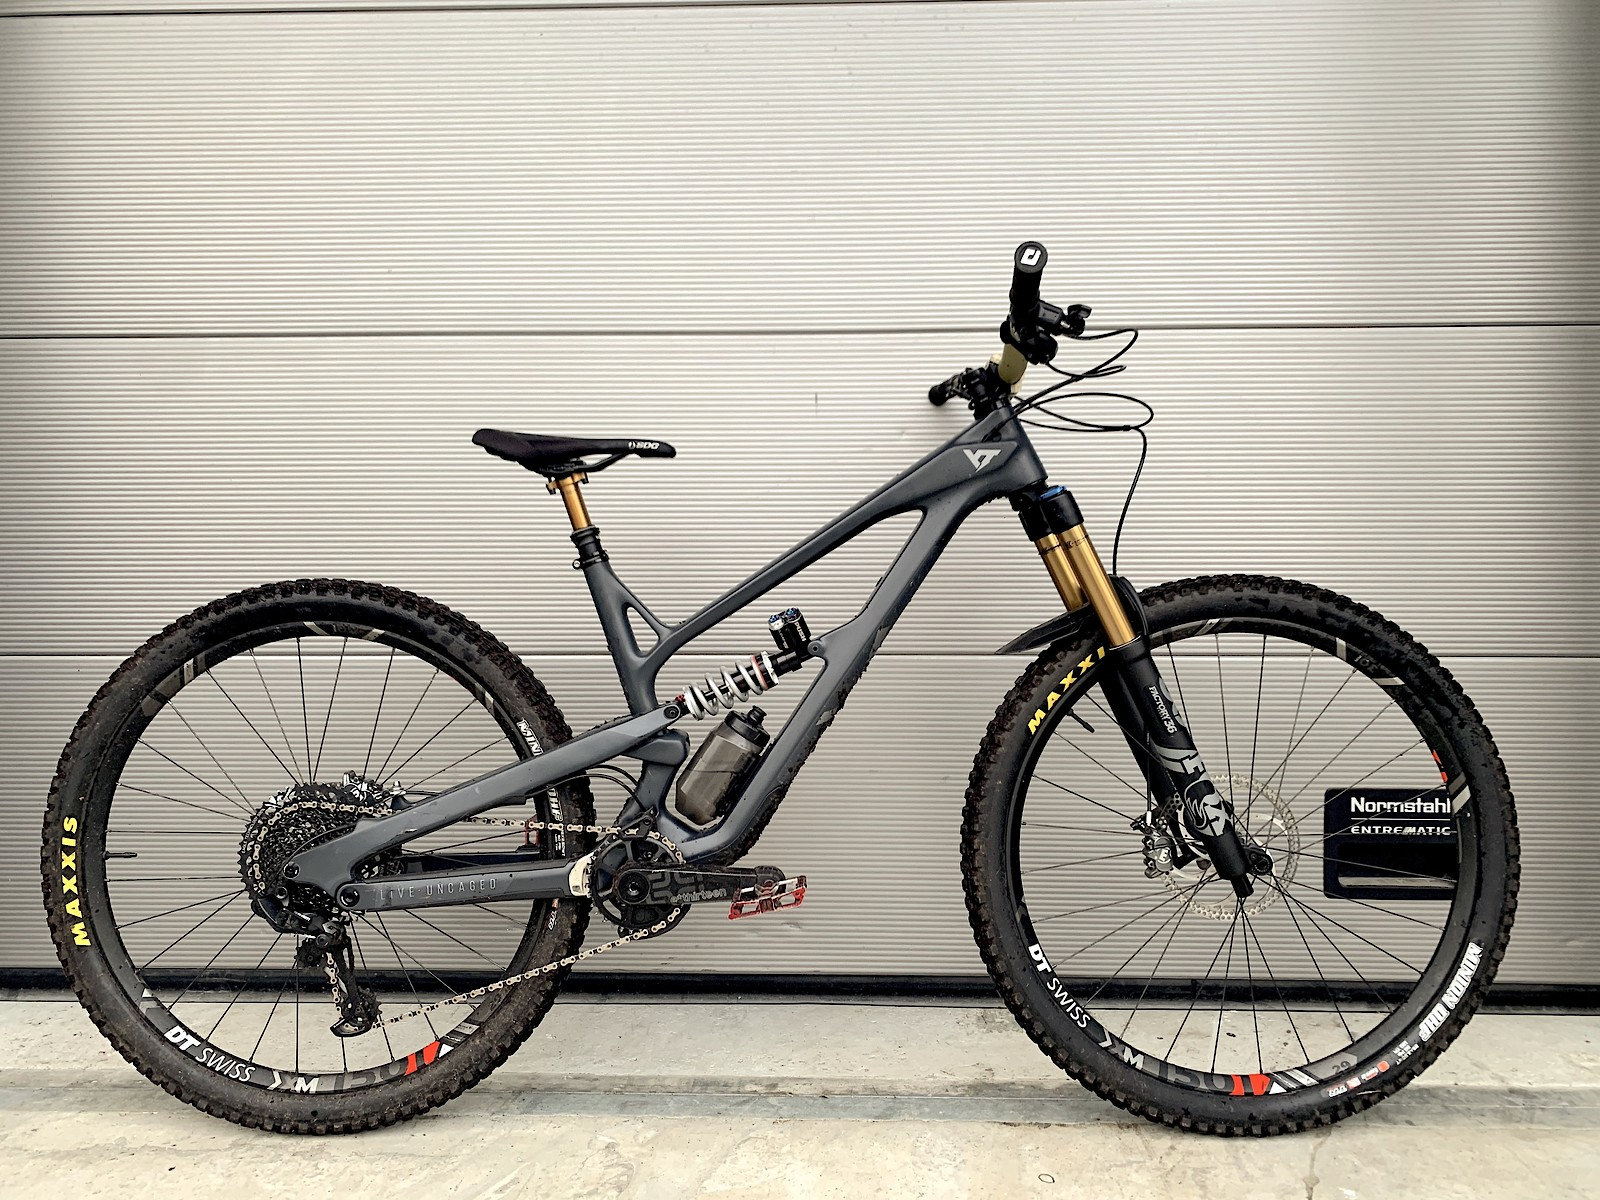 fourth version now? This version rips - super fun for wet and slippery autumn trails